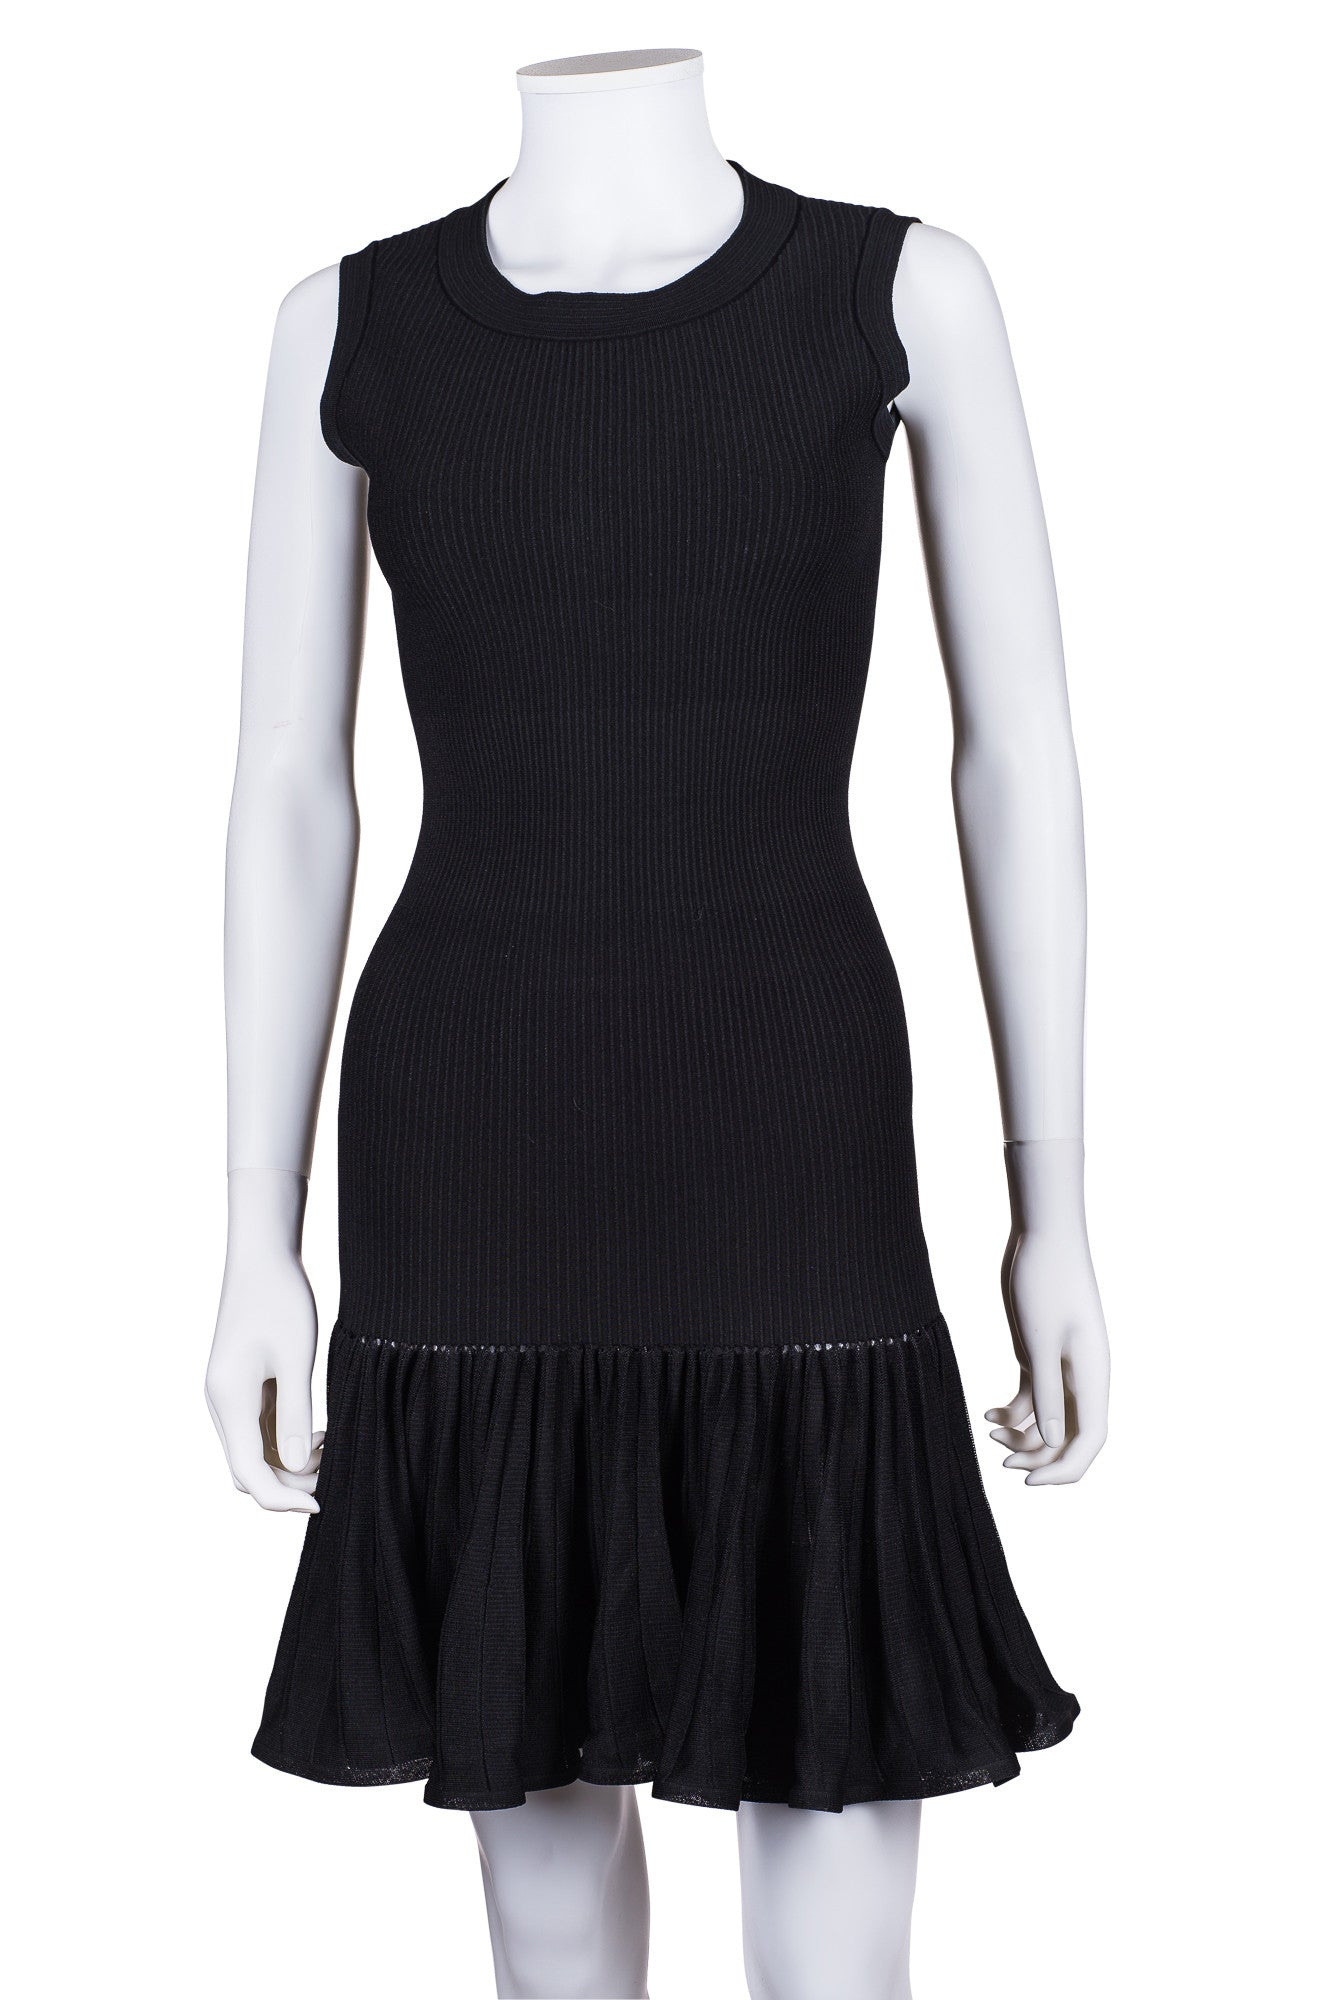 ALAÏA Fit and Flare Dress